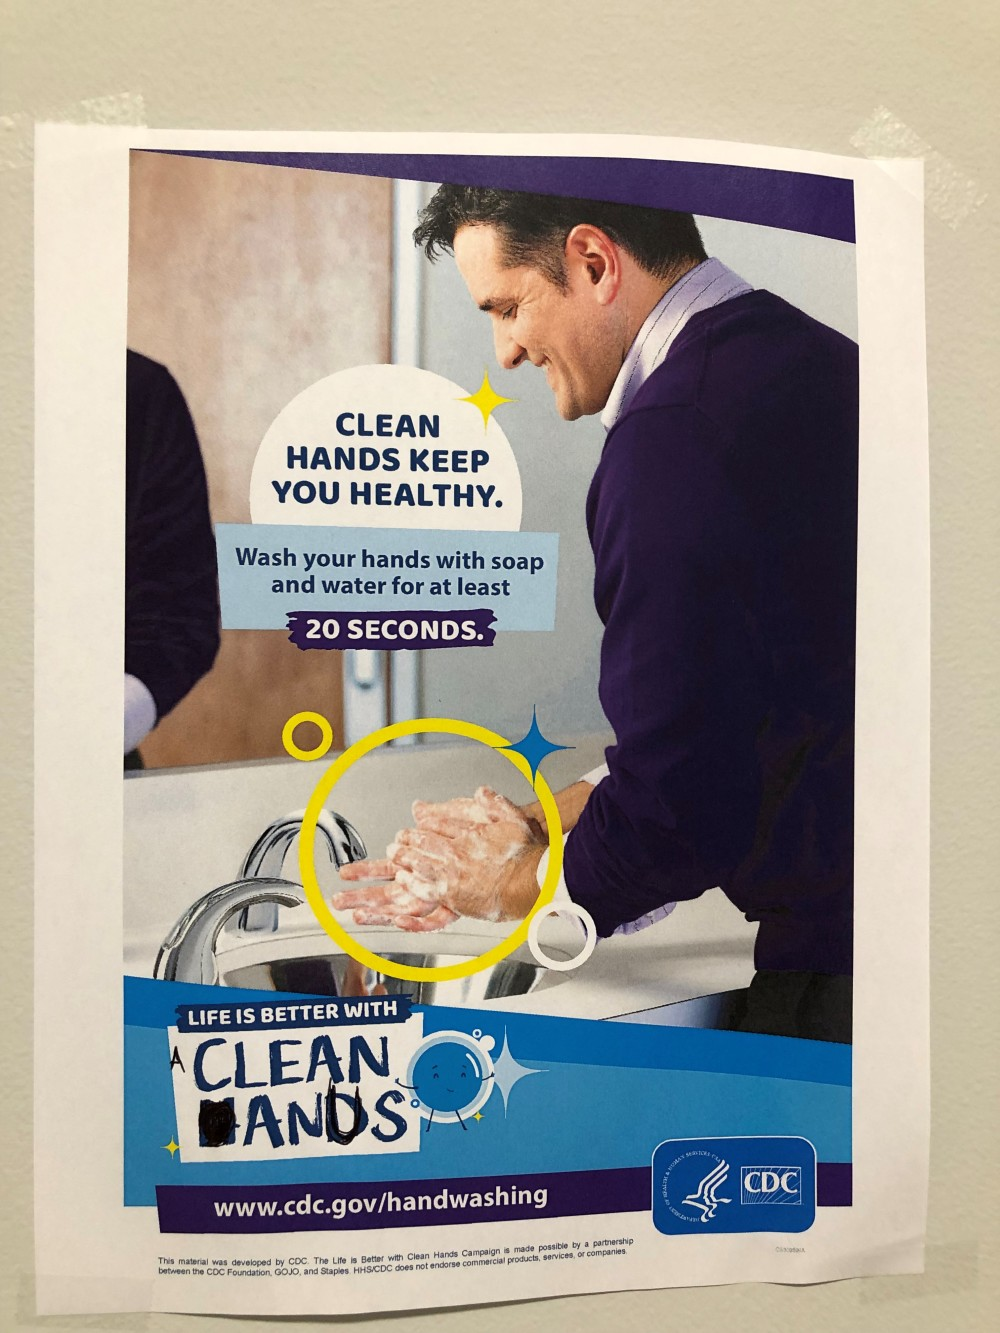 Life is better with a clean anus